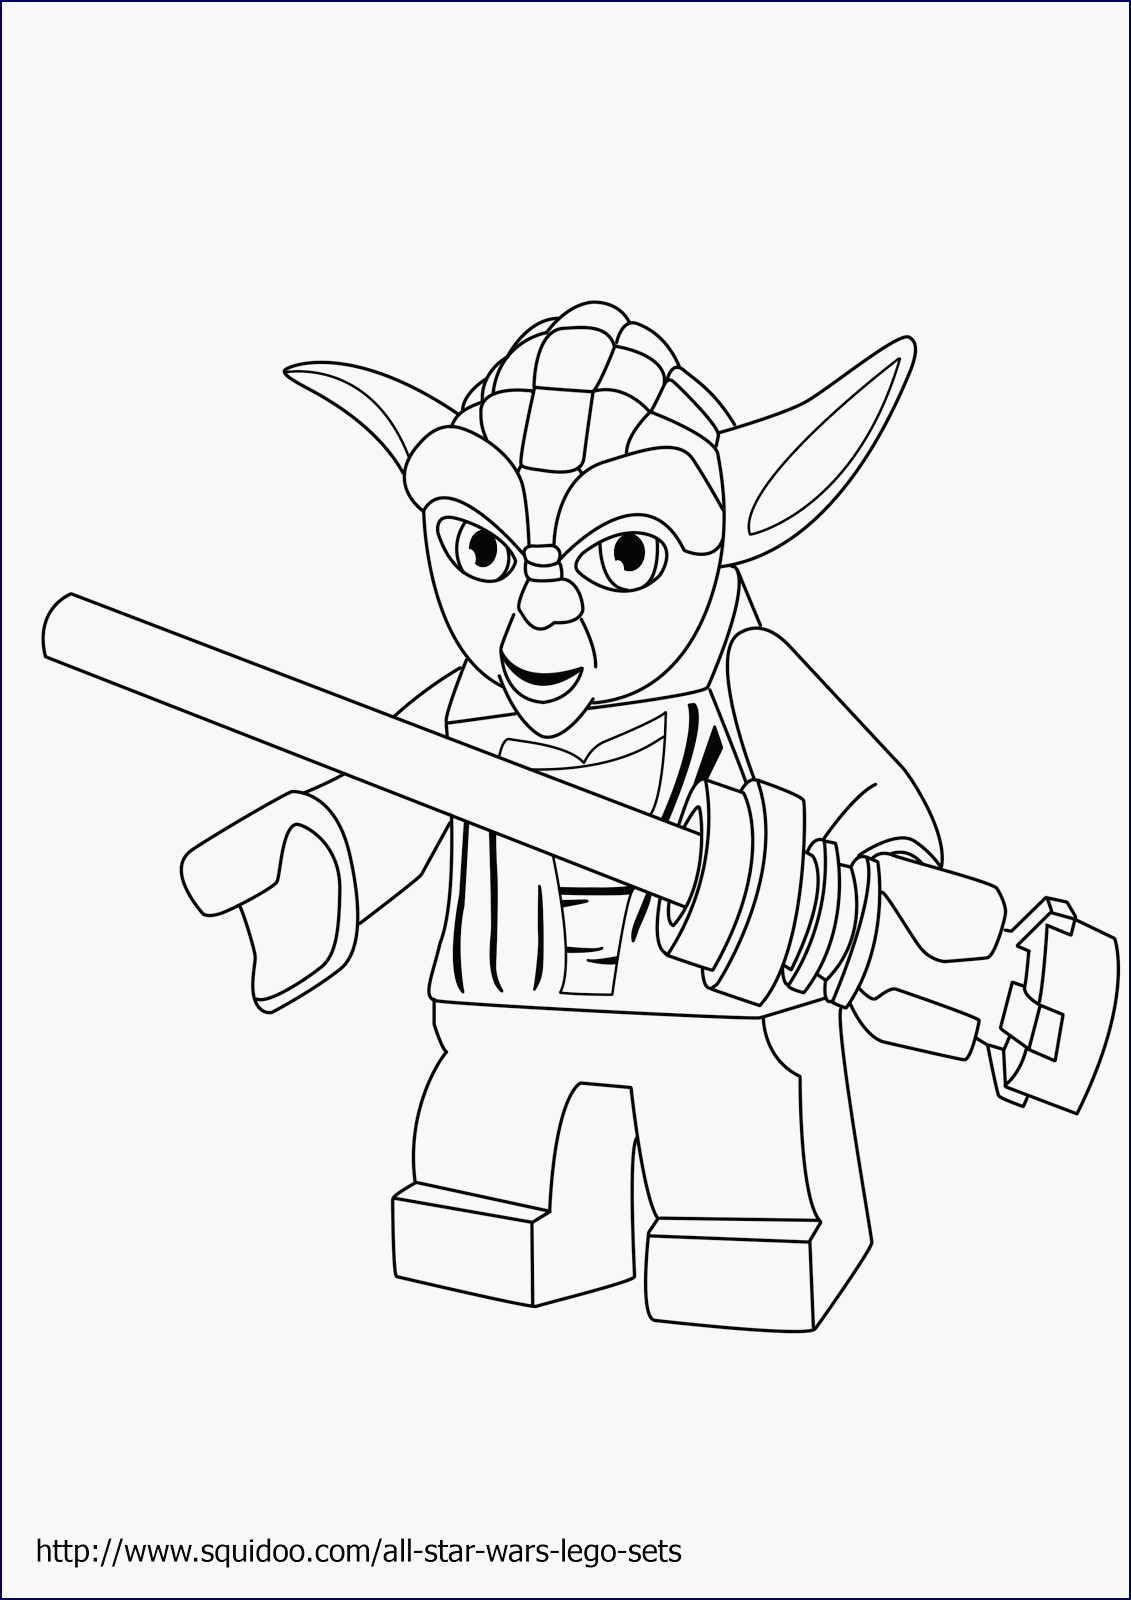 Ausmalbilder Star Wars Lego Inspirierend Lego Starwars Coloring Pages Christmas Coloring Pages Lego Schön Stock